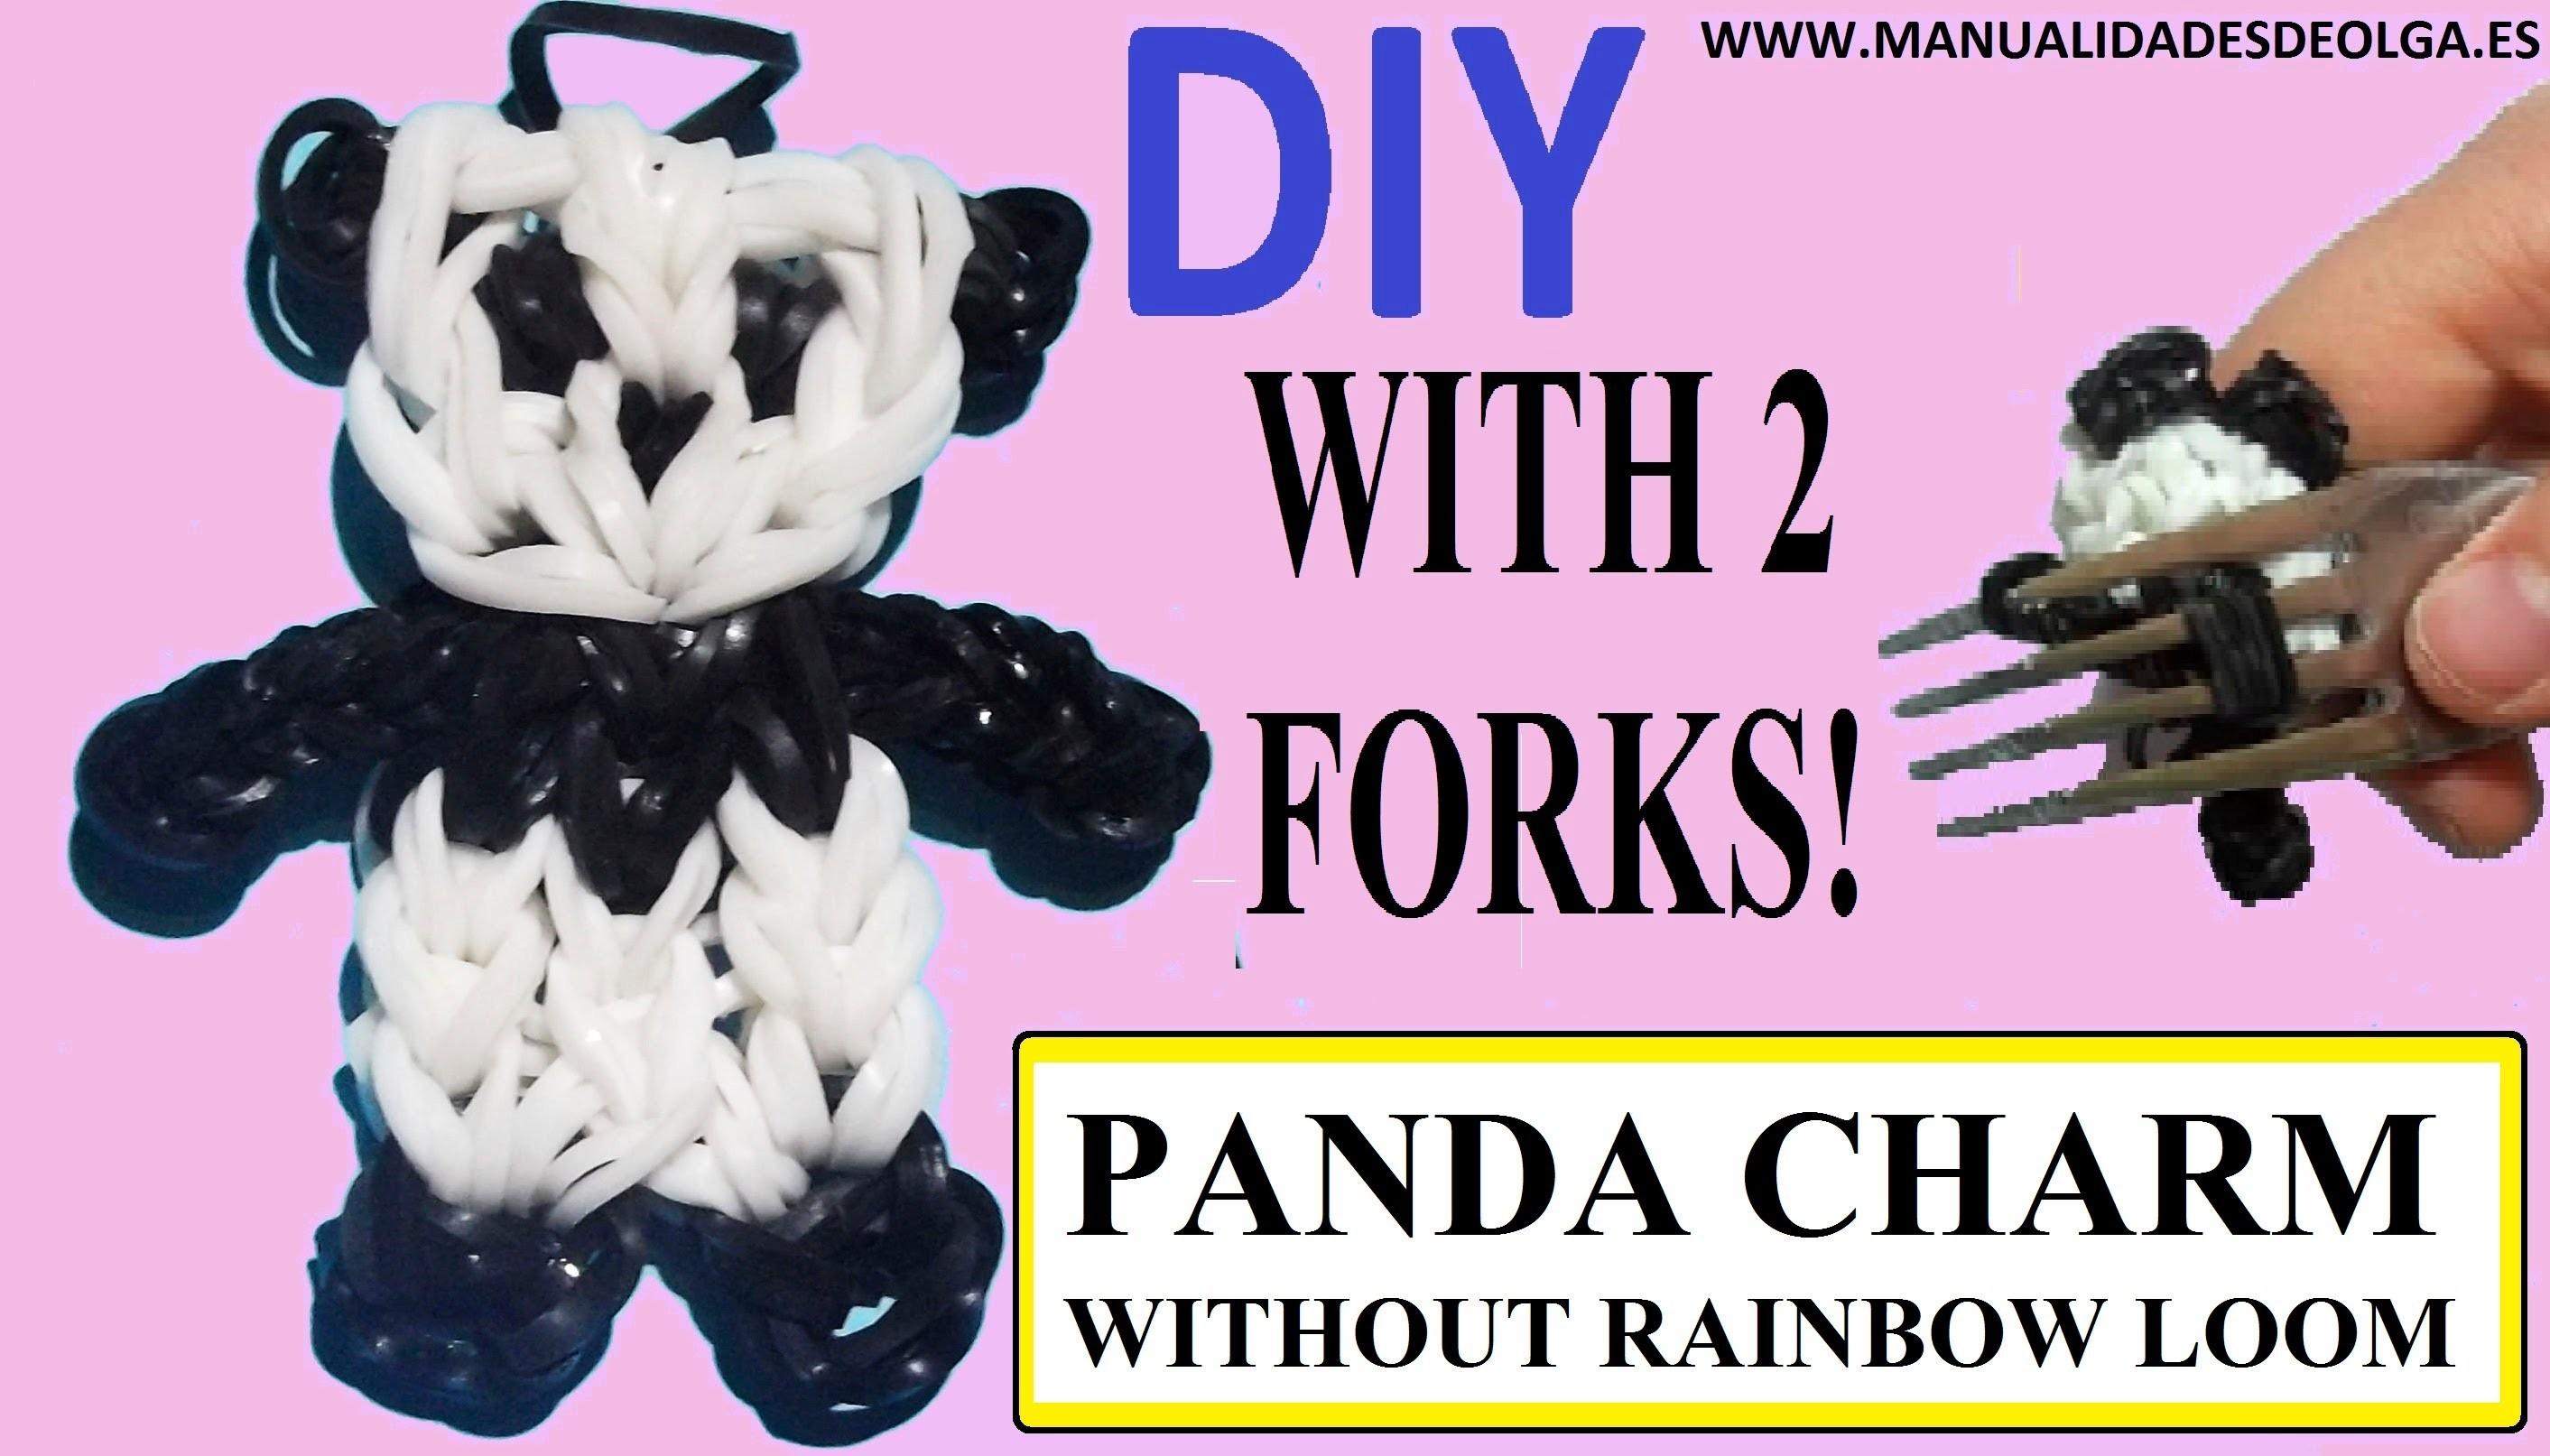 PANDA CHARM figurine With two forks without Rainbow Loom Tutorial. (Mini Figurine)